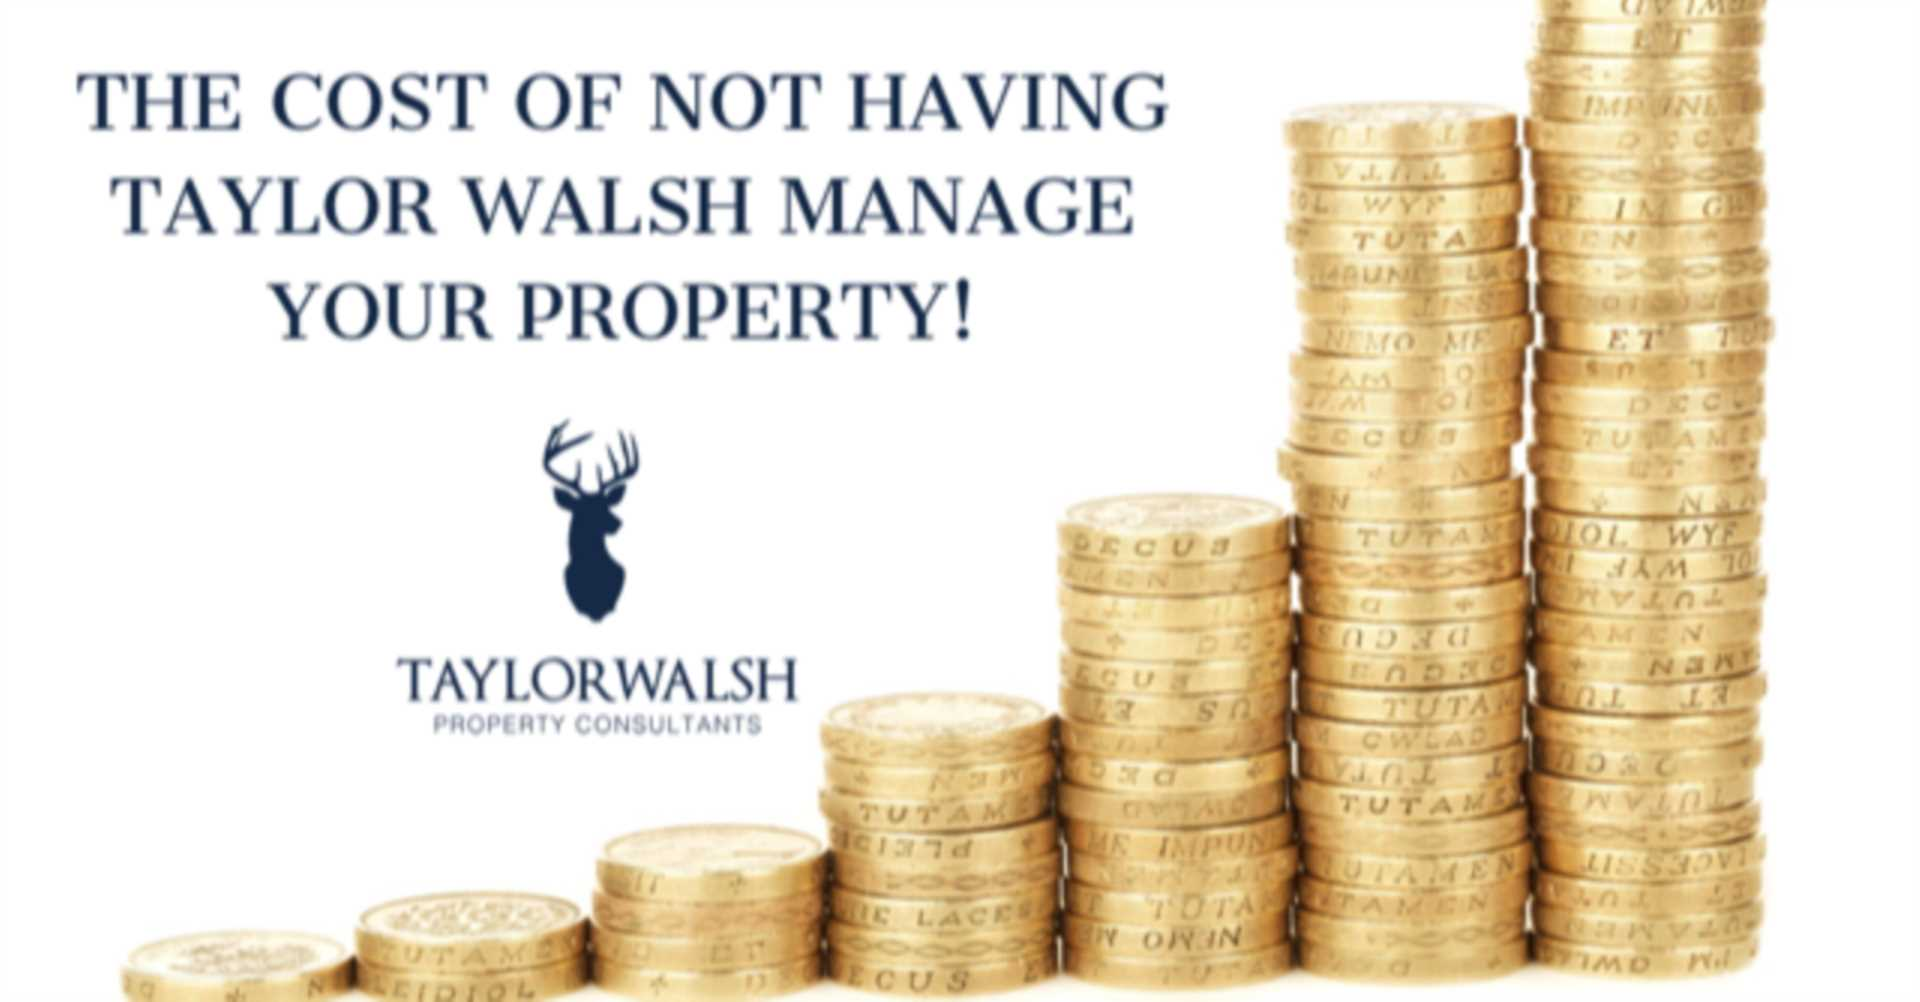 THE COST OF NOT HAVING TAYLOR WALSH  MANAGE YOUR PROPERTY!